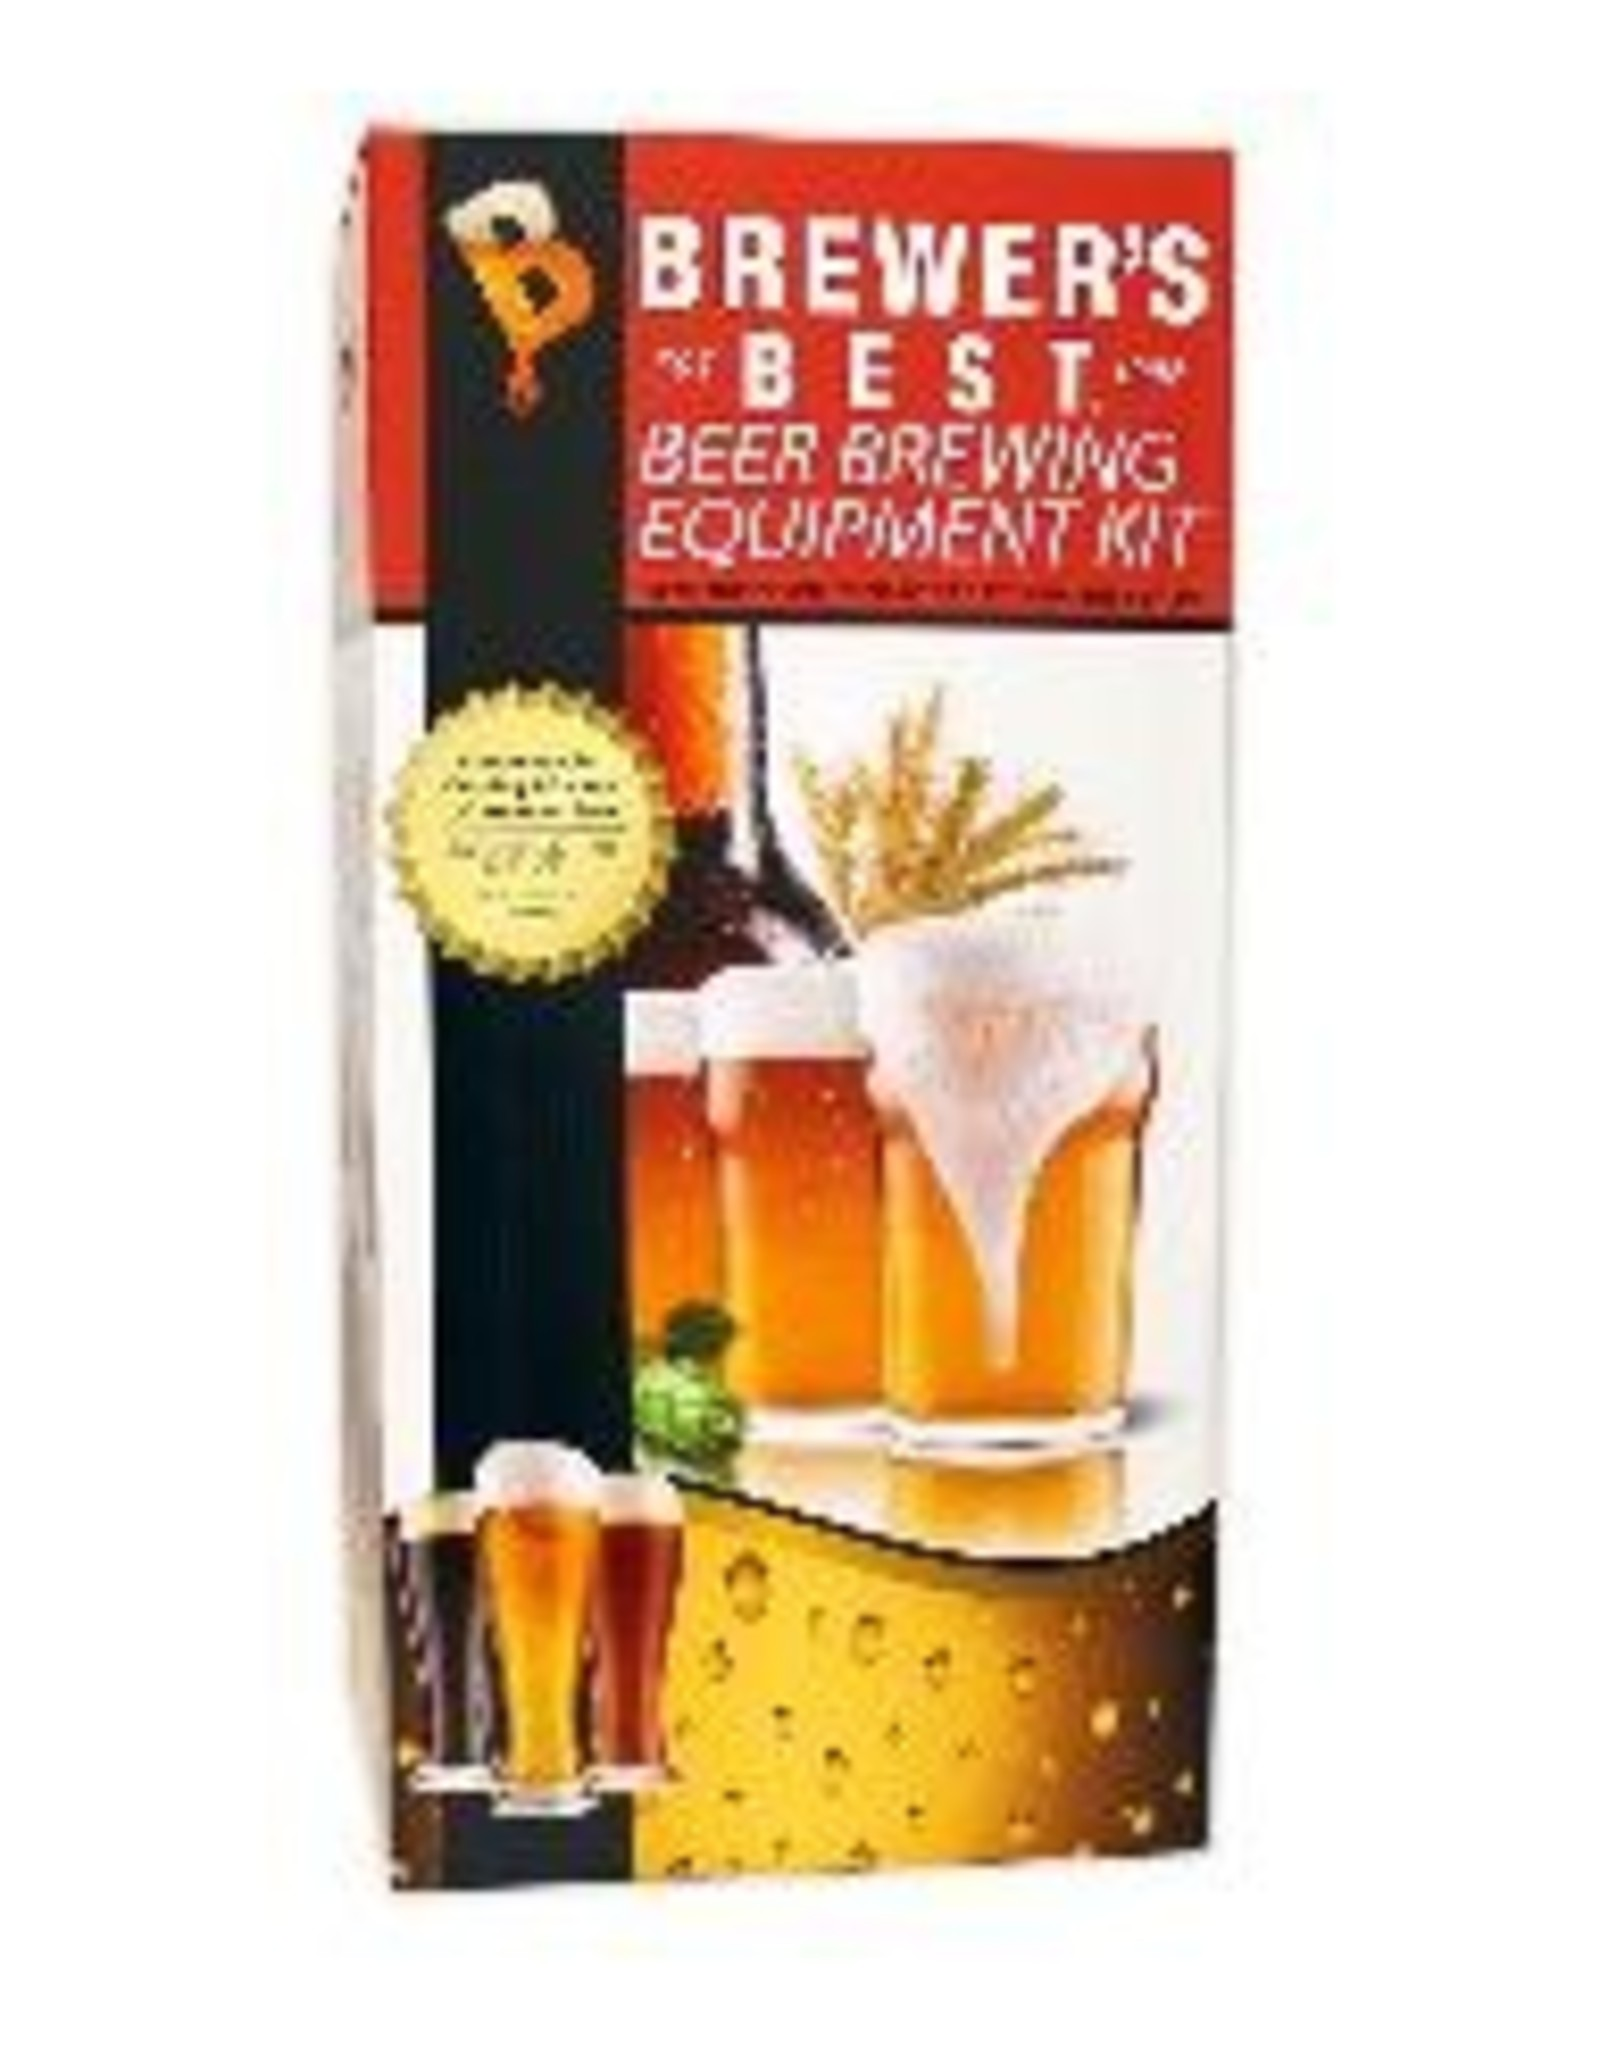 """BREWERS BEST The complete equipment package. Contains everything a beginning brewer needs except boiling pot, bottles and caps: 6.5 gallon """"Ale Pail"""" Primary Fermenter with Grommeted Lid, 6.5 gallon """"Ale Pail"""" Bottling Bucket with Spigot, 5 Gallon Glass Carboy, """"Home"""